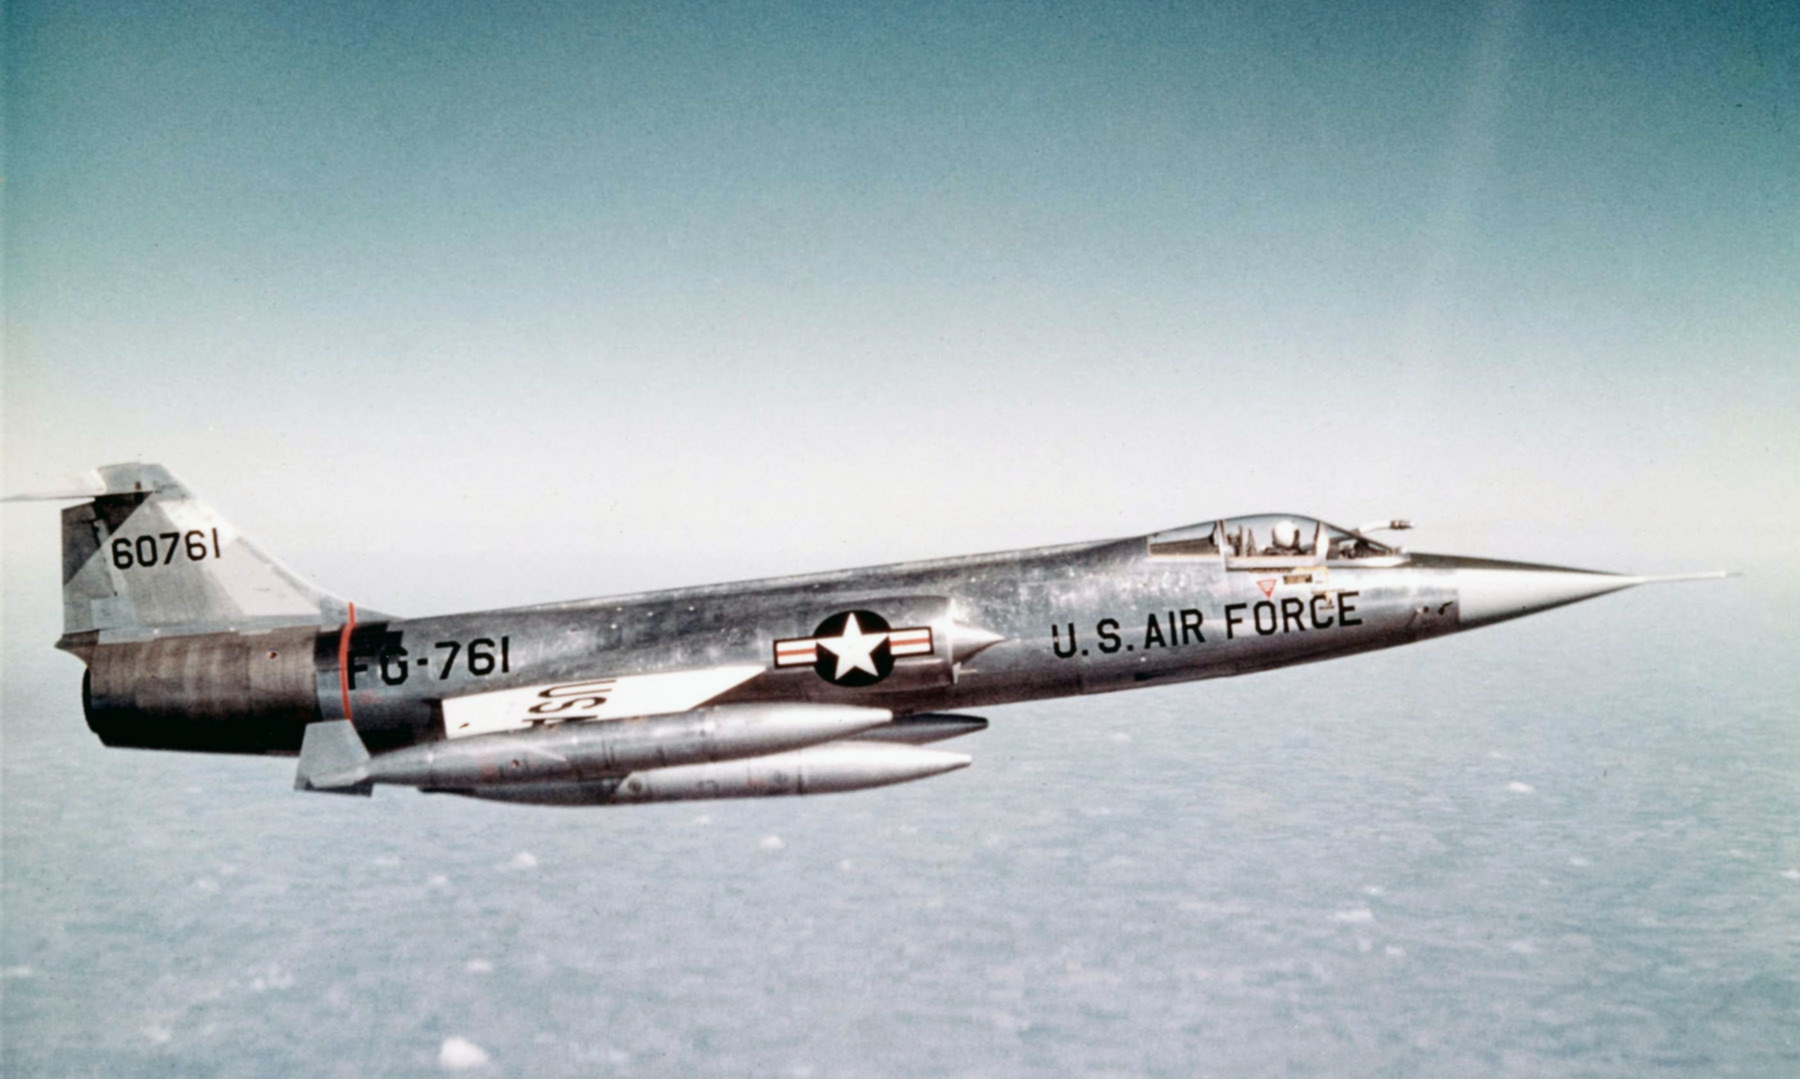 A U.S. Air Force Lockheed F-104A-10-LO Starfighter (s/n 56-0761) in flight. Note that the aircraft is equipped with an inflight refueling probe. ( Image by USAF - National Museum of the U.S. Air Force photo 060928-F-1234S-011 via Wikipedia)